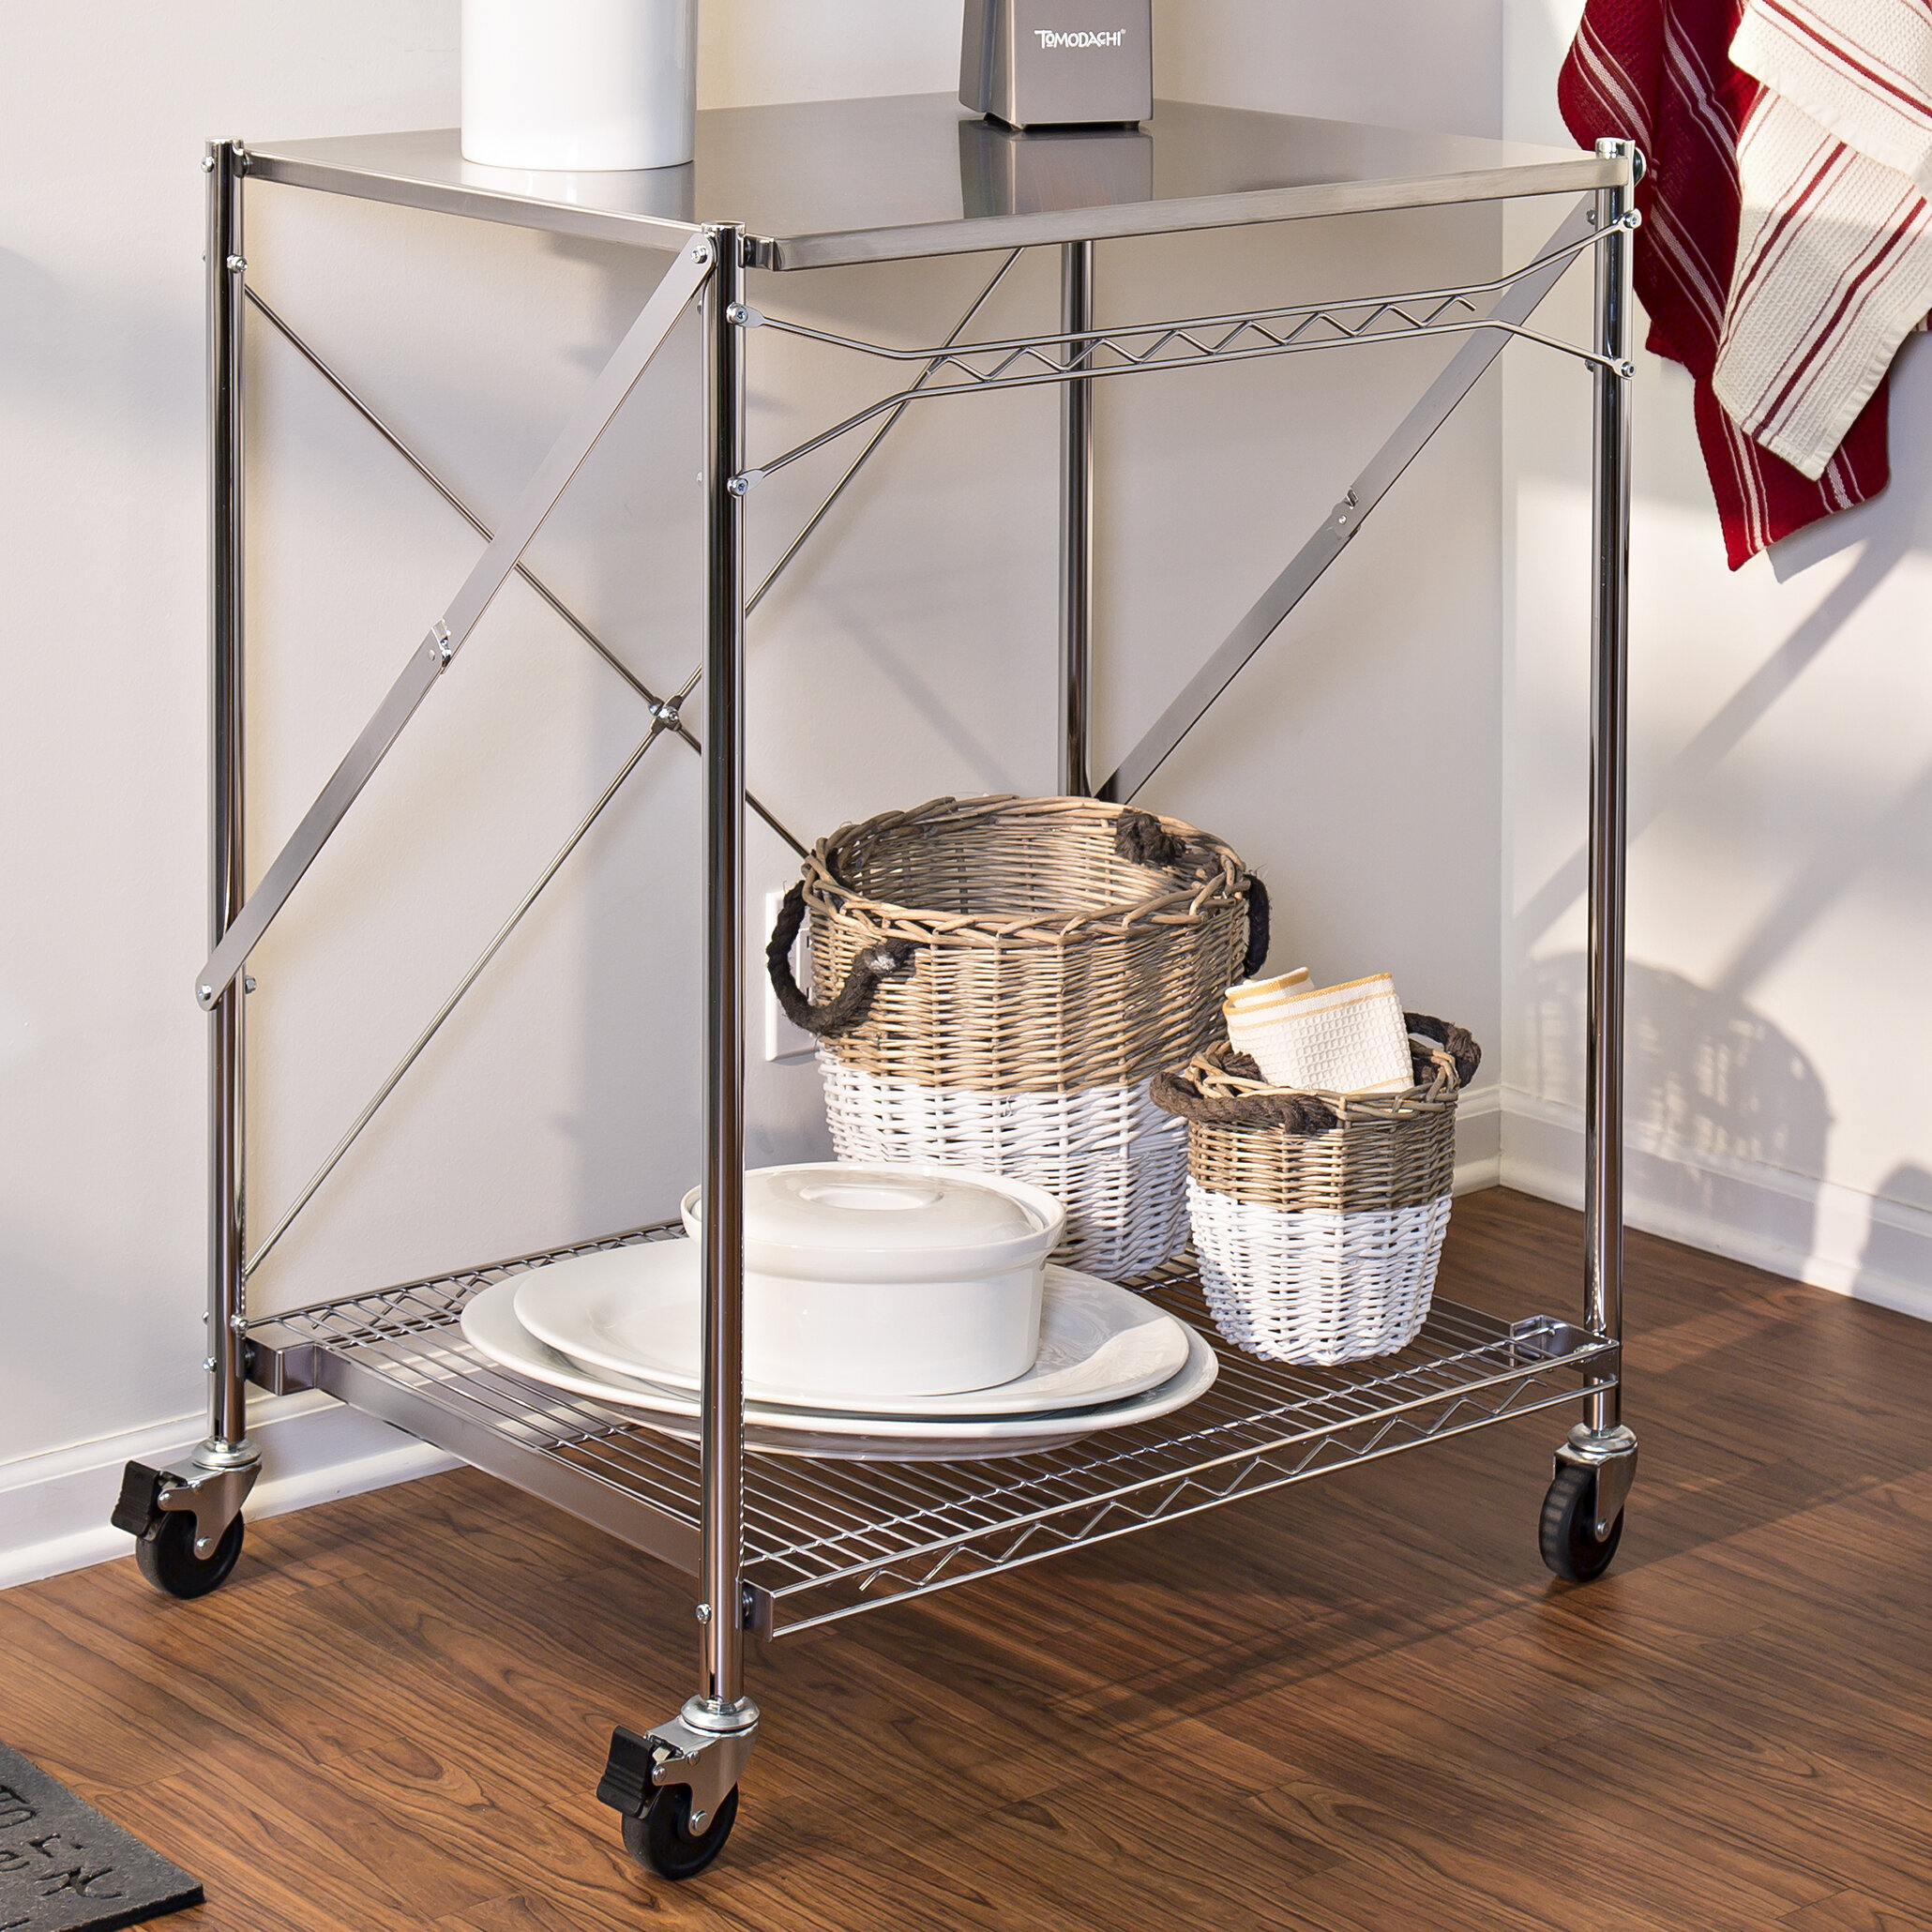 Origami Foldable Kitchen Island Cart, Black | 2060x2060